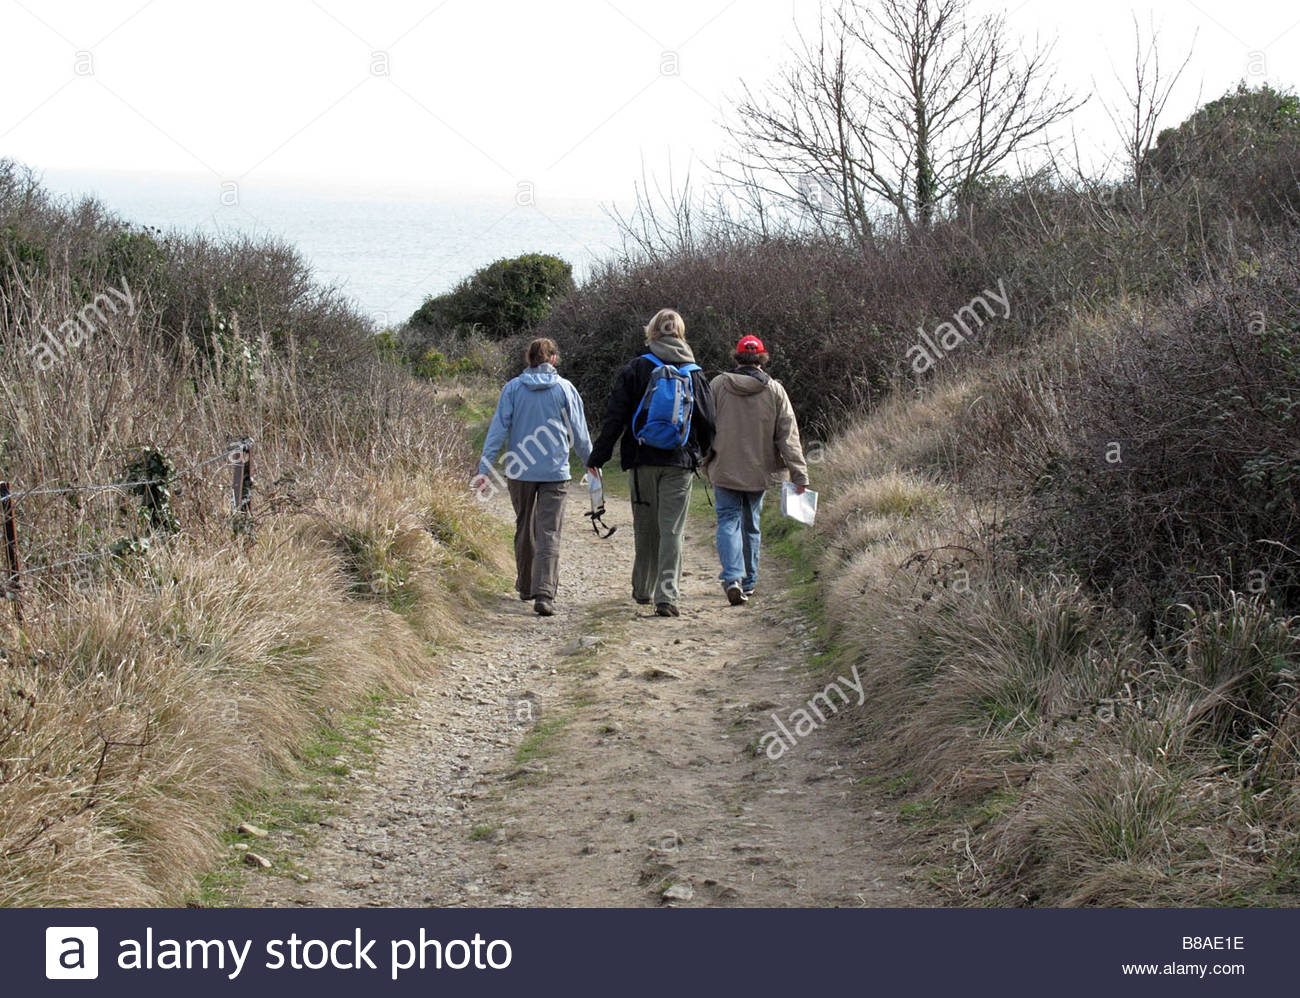 Winter walk from Worth Matravers to Winspit, Isle of Purbeck, Dorset, England, UK - Stock Image